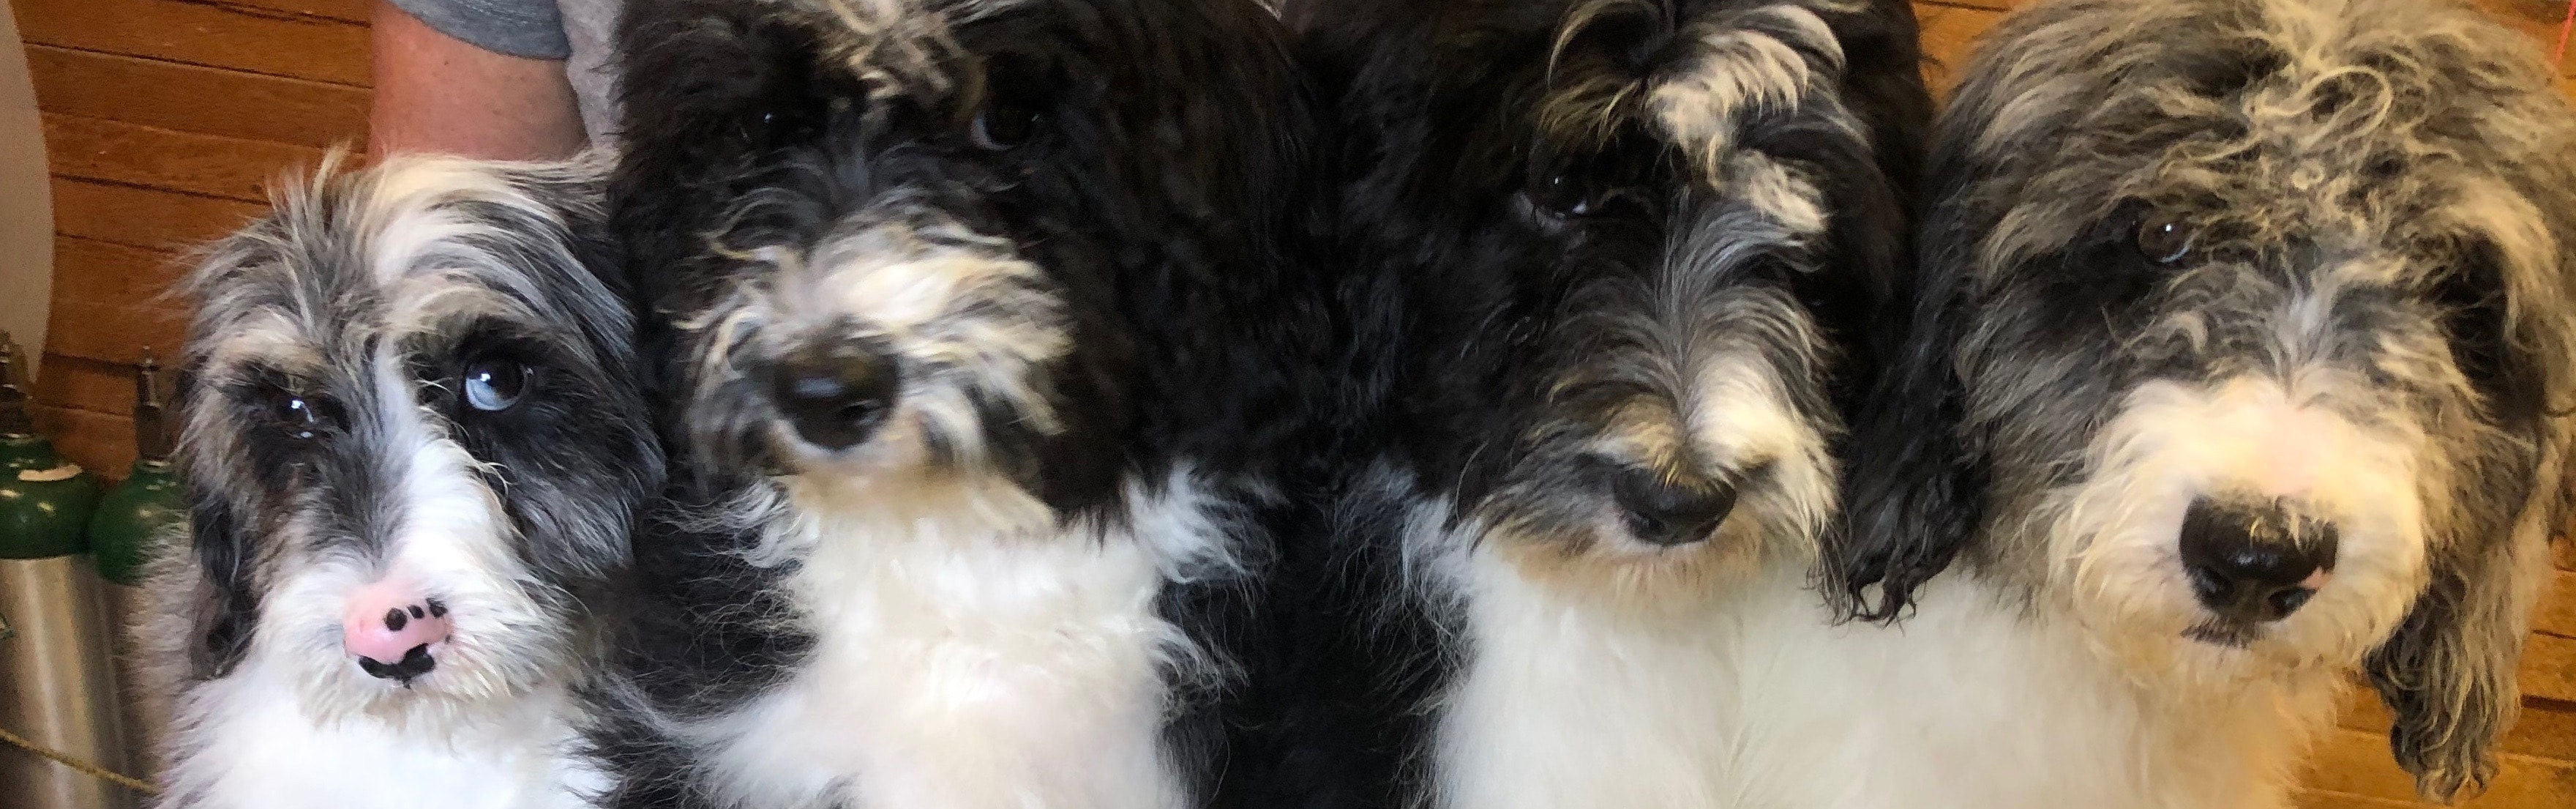 Sheepadoodles Moyen Sized F1b Ready Now Started Puppies Goldendoodle Breeder Ny Goldendoodle Puppies Ny Mini Sheepadoodle Puppies Doodles By River Valley Doodle Puppies